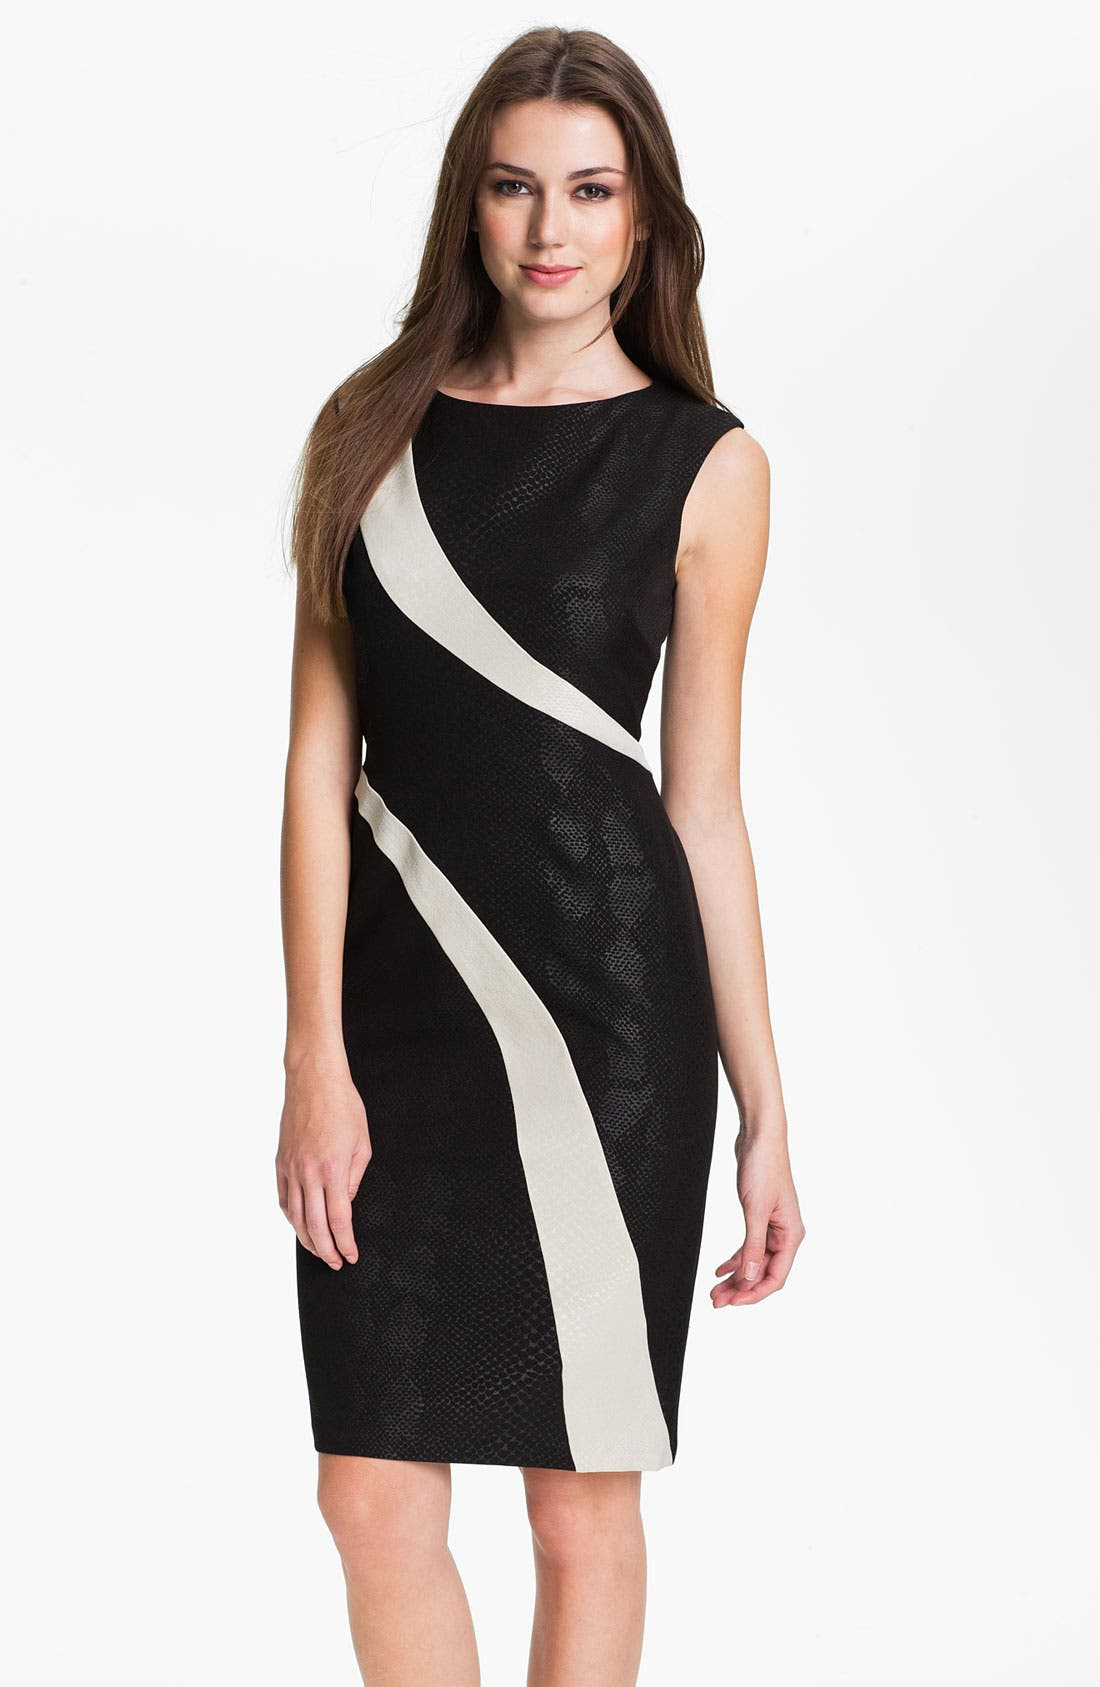 Alternate Image 1 Selected - Adrianna Papell Contrast Panel Snakeskin Pattern Sheath Dress